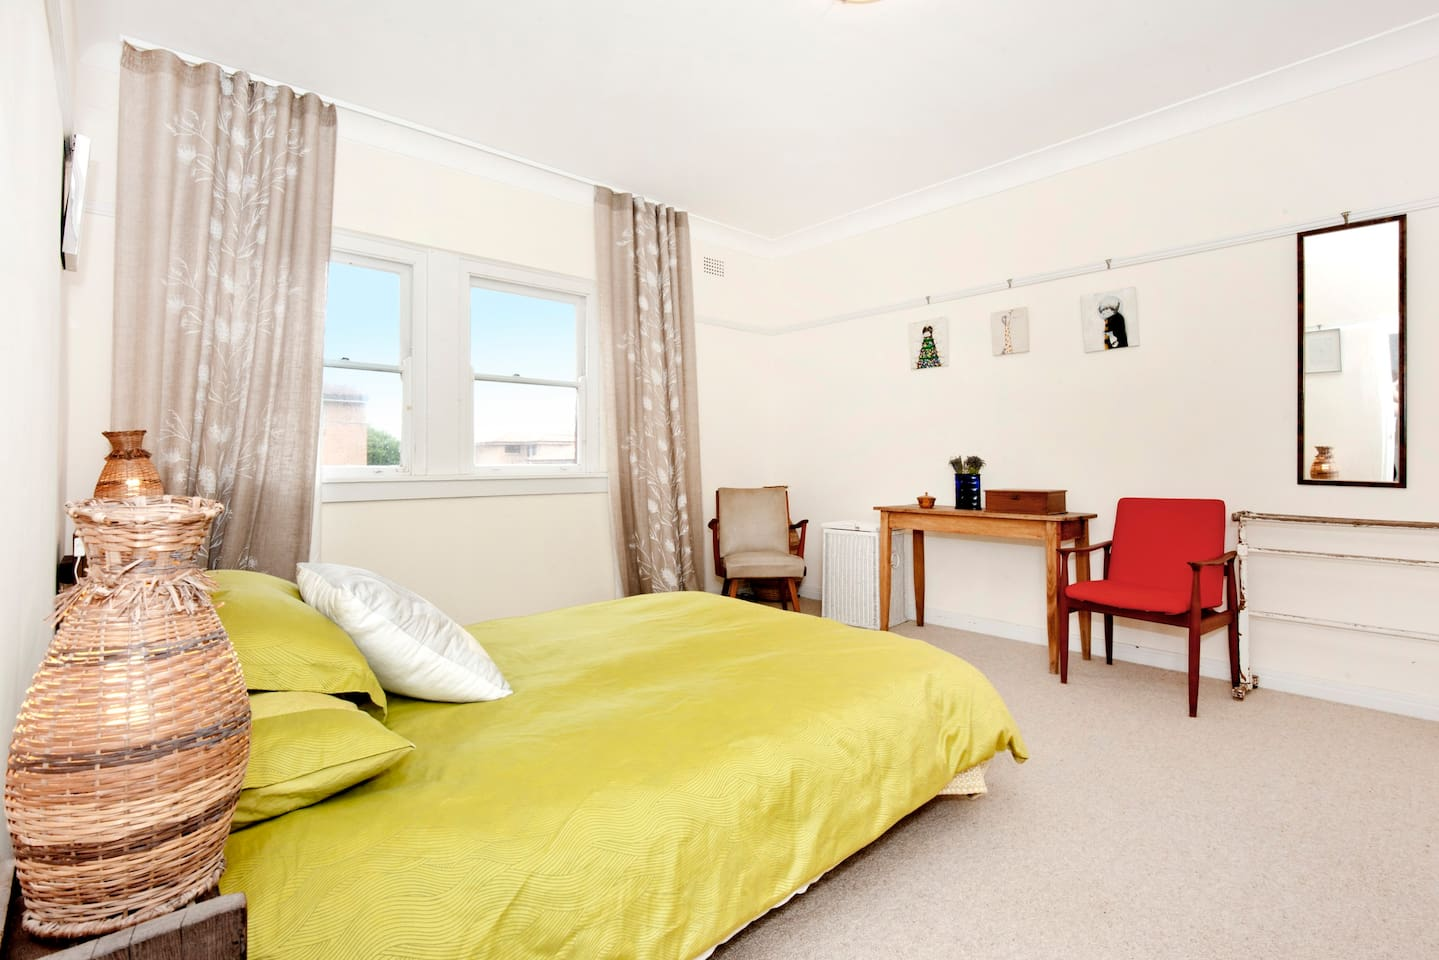 Main bedroom with queen sized bed, built in wardrobes and morning sun